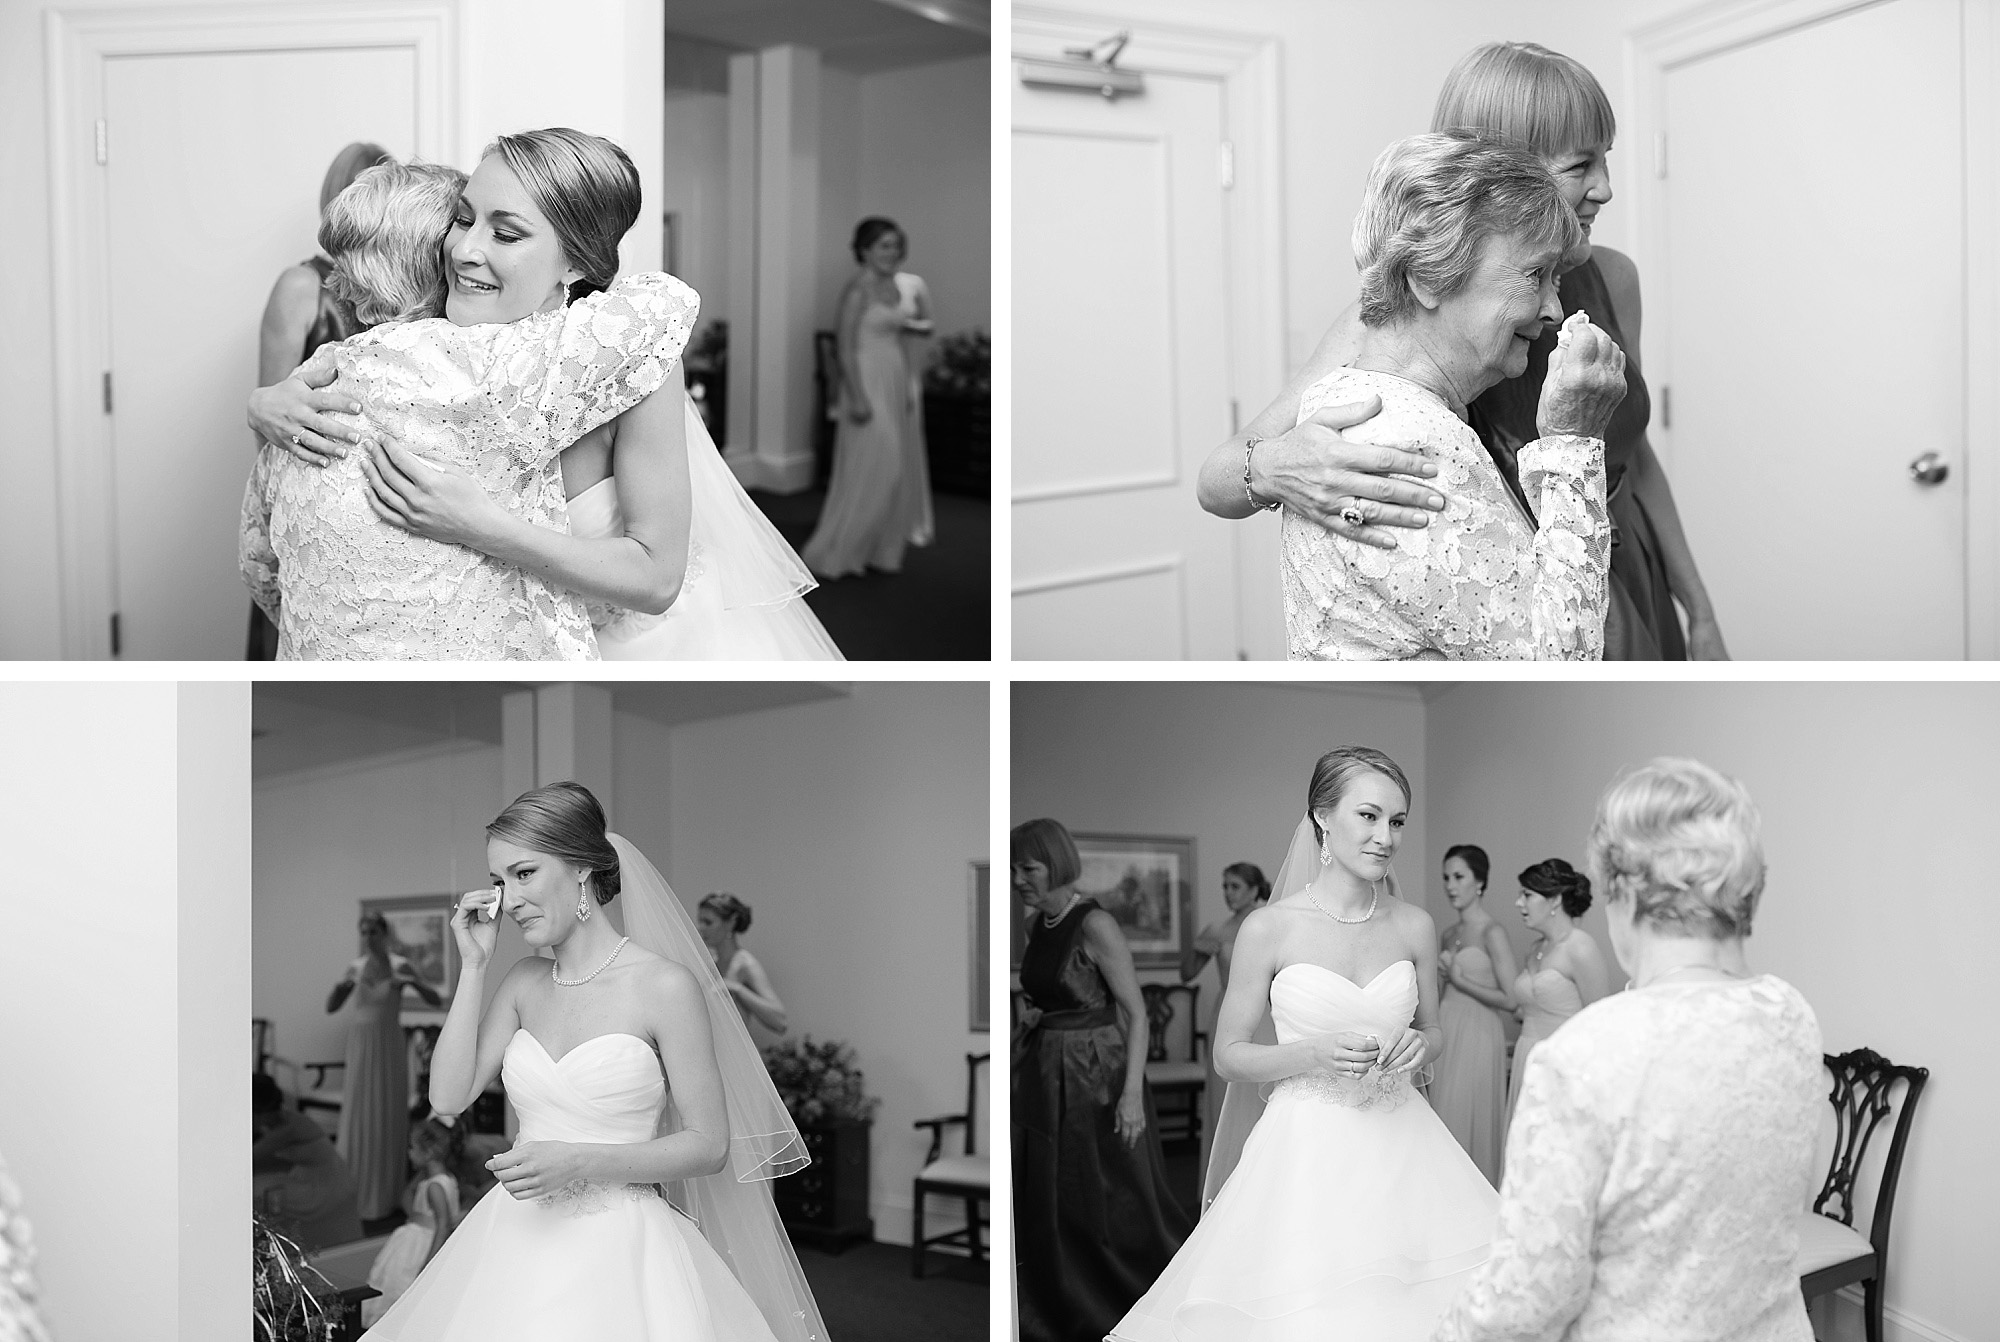 The tears were rolling when Tarina's grandmother saw her for the first time as a bride.